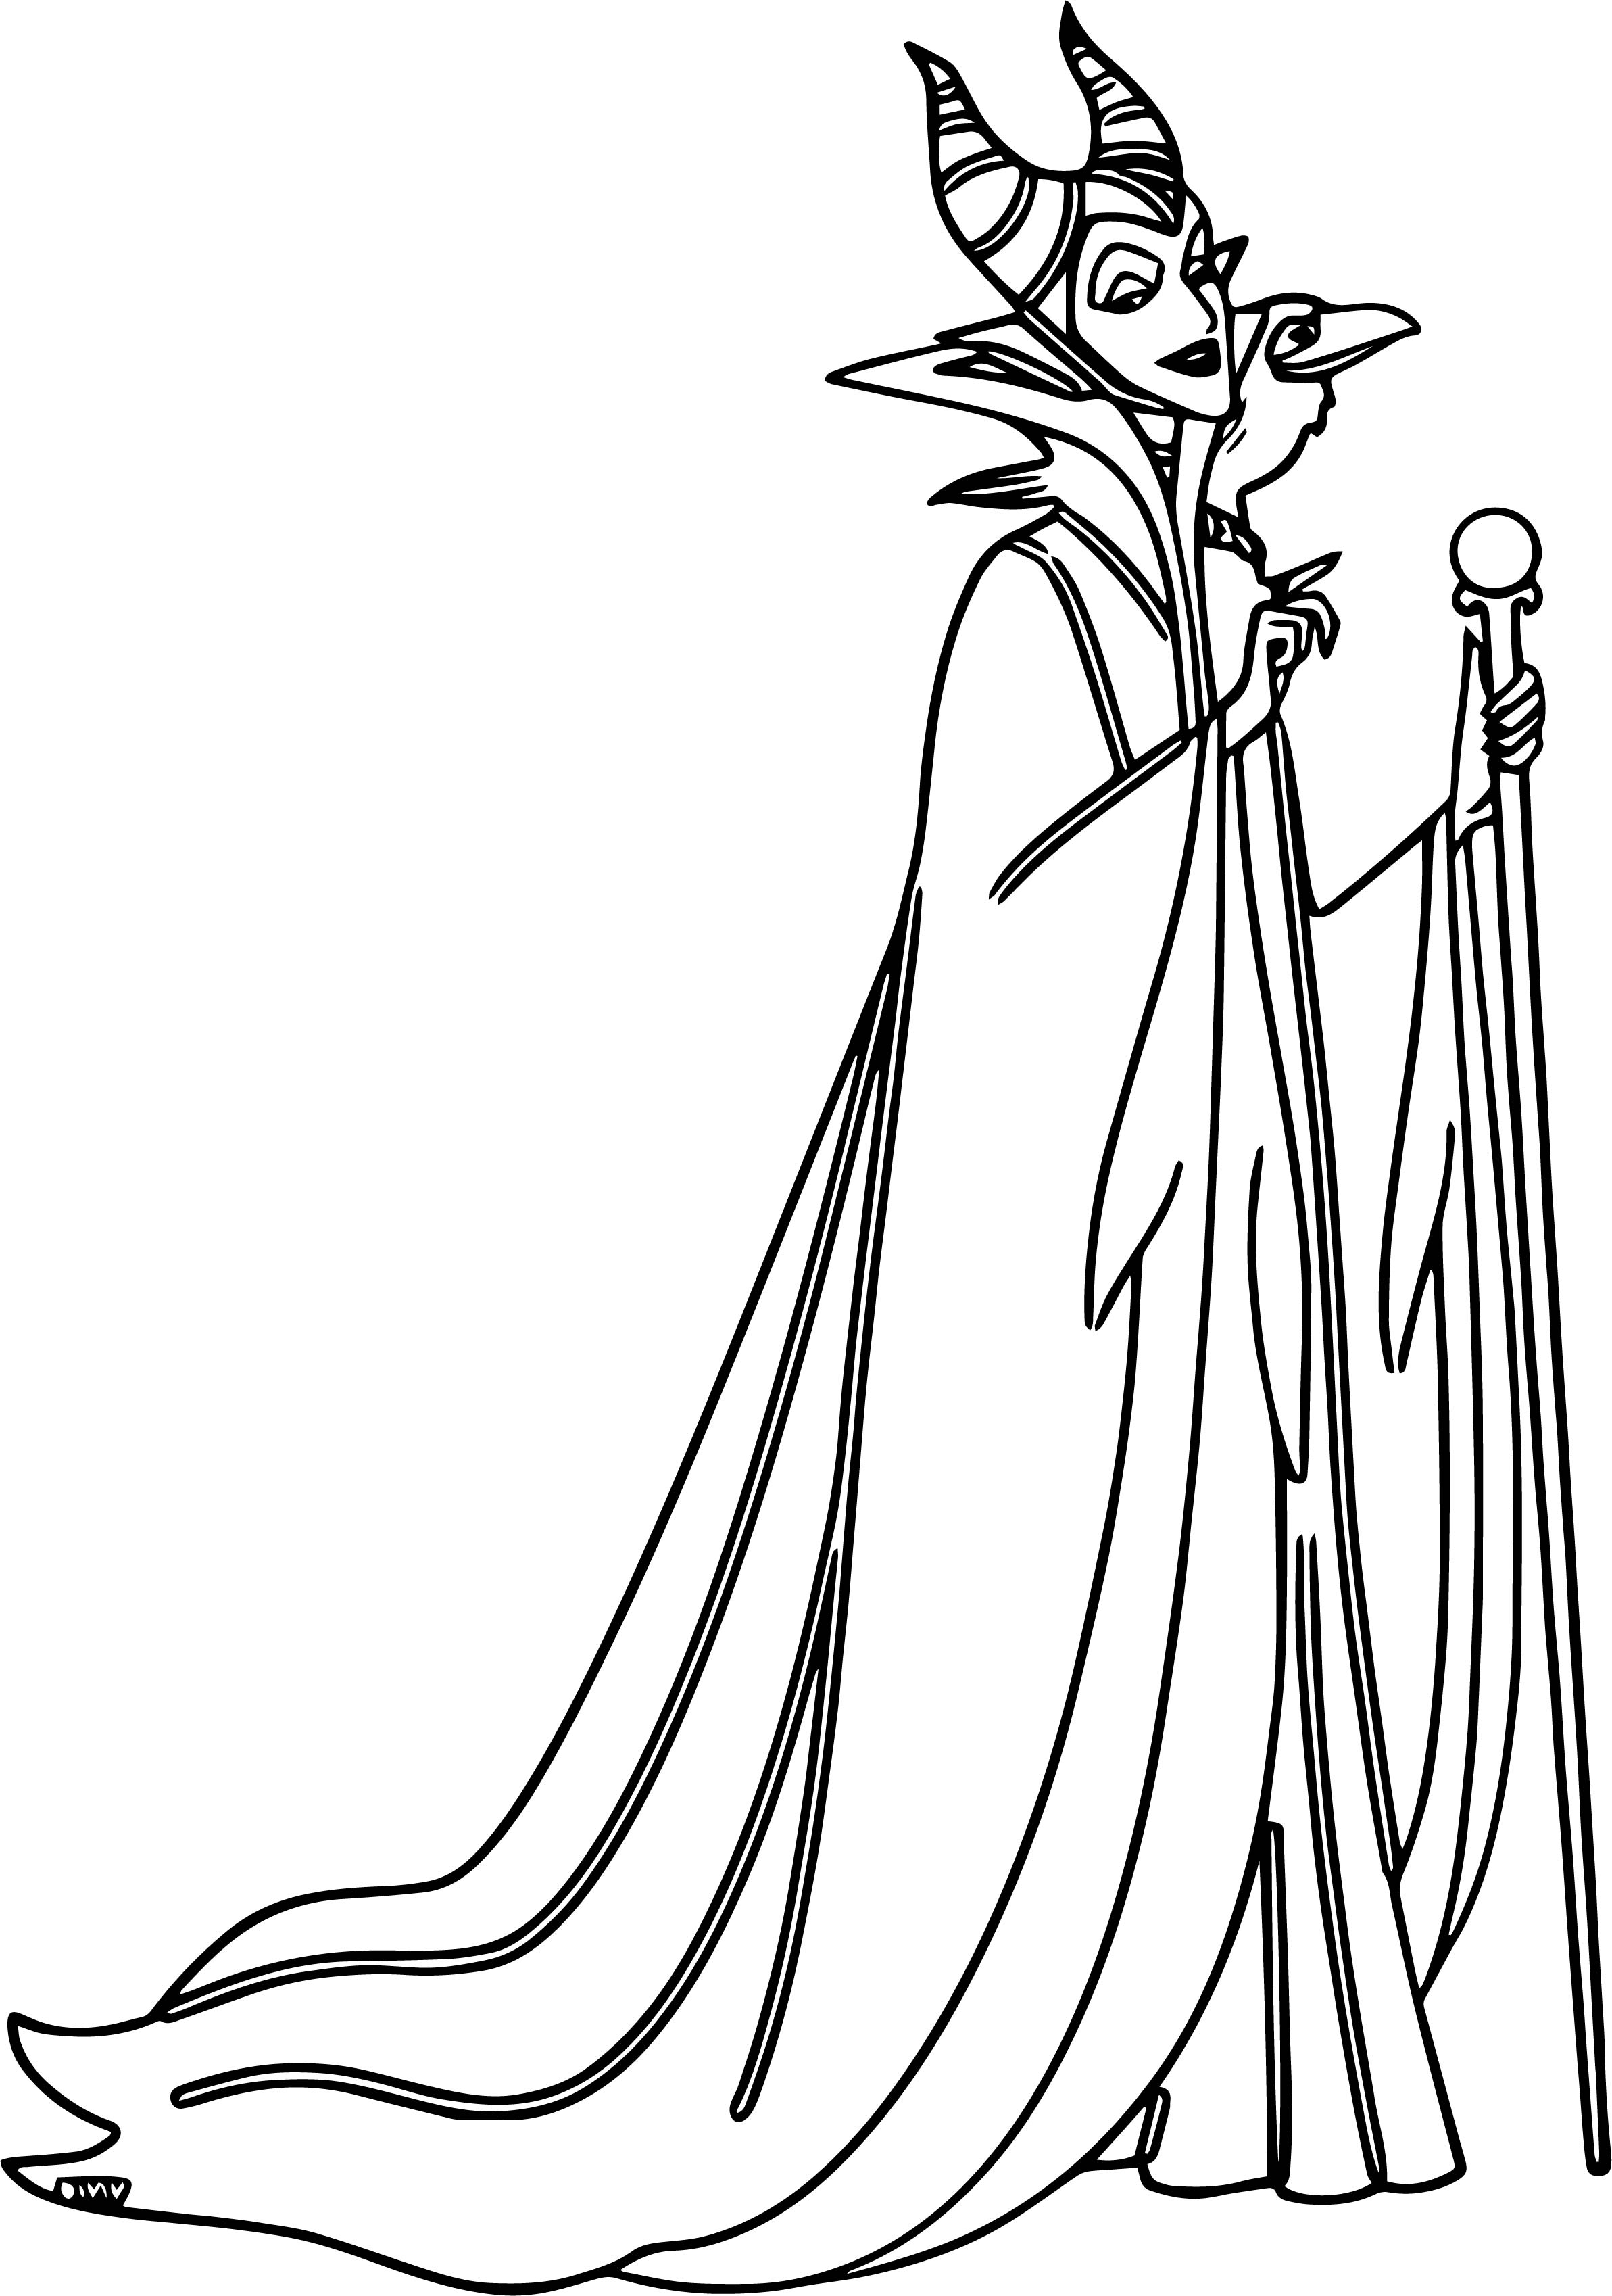 Maleficent Diablo Waiting Coloring Page